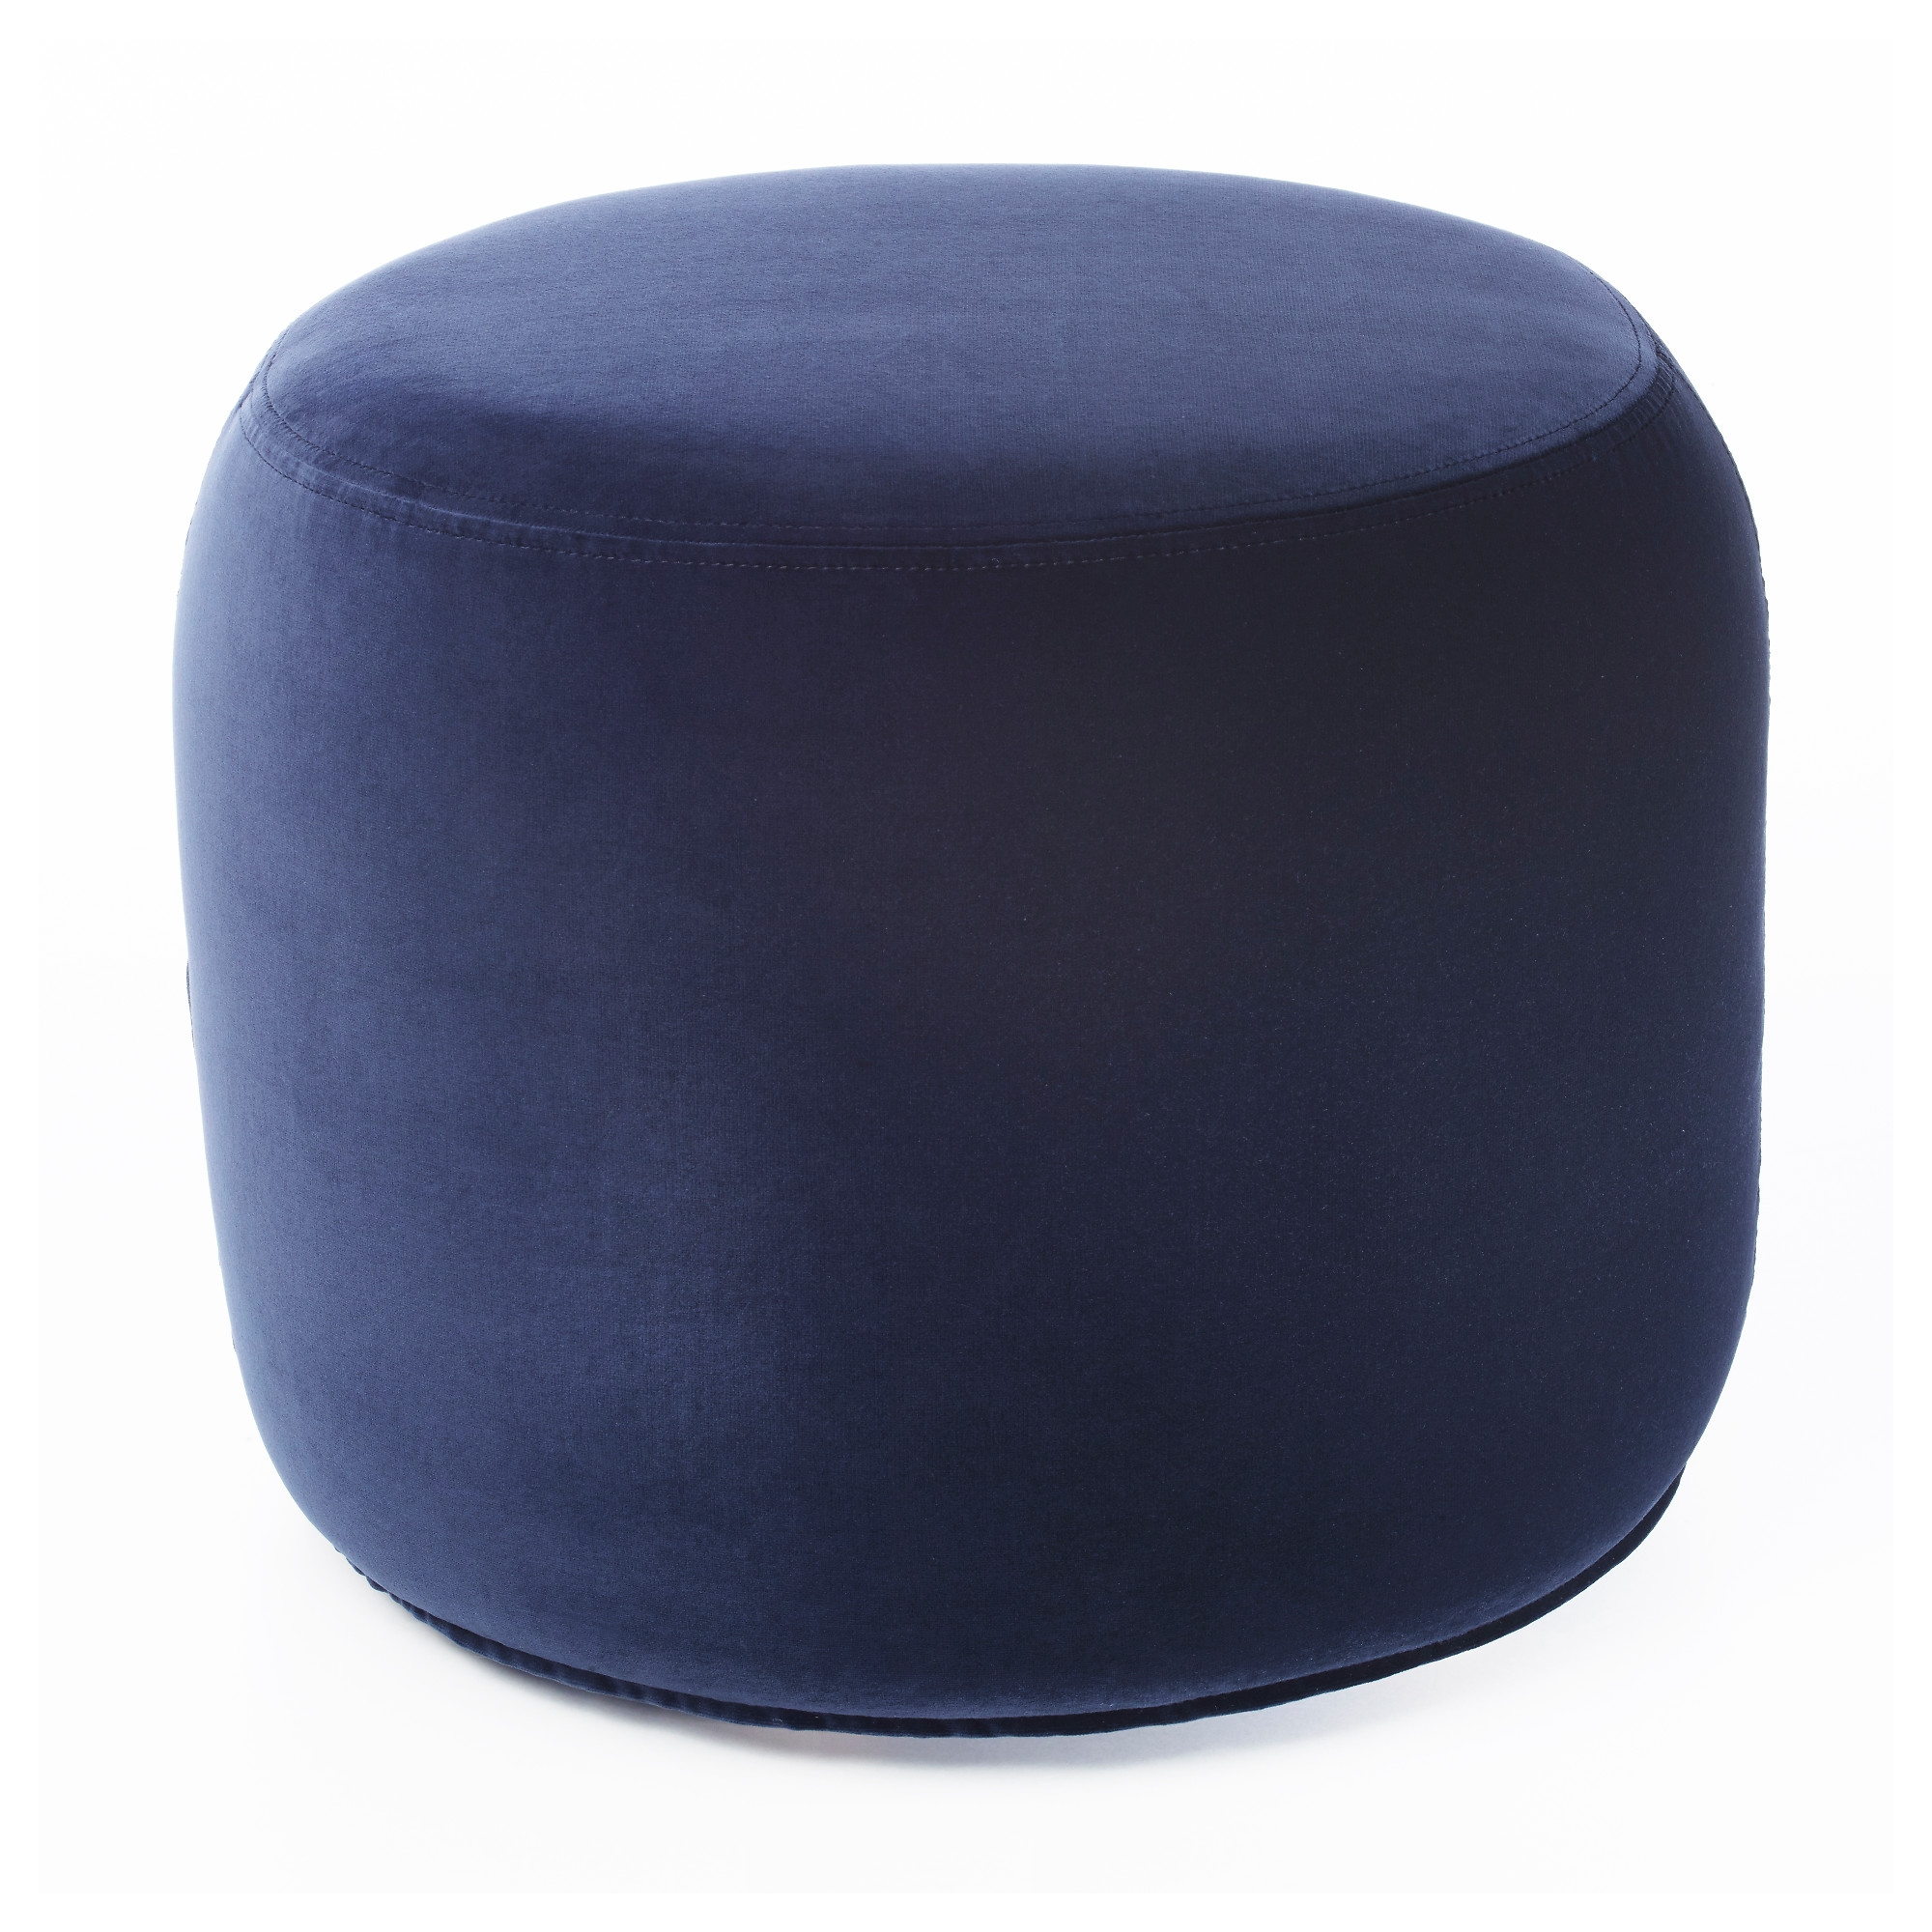 Footstools Ottomans Pouffes Ikea With Cheap Footstools And Pouffes (Image 6 of 15)